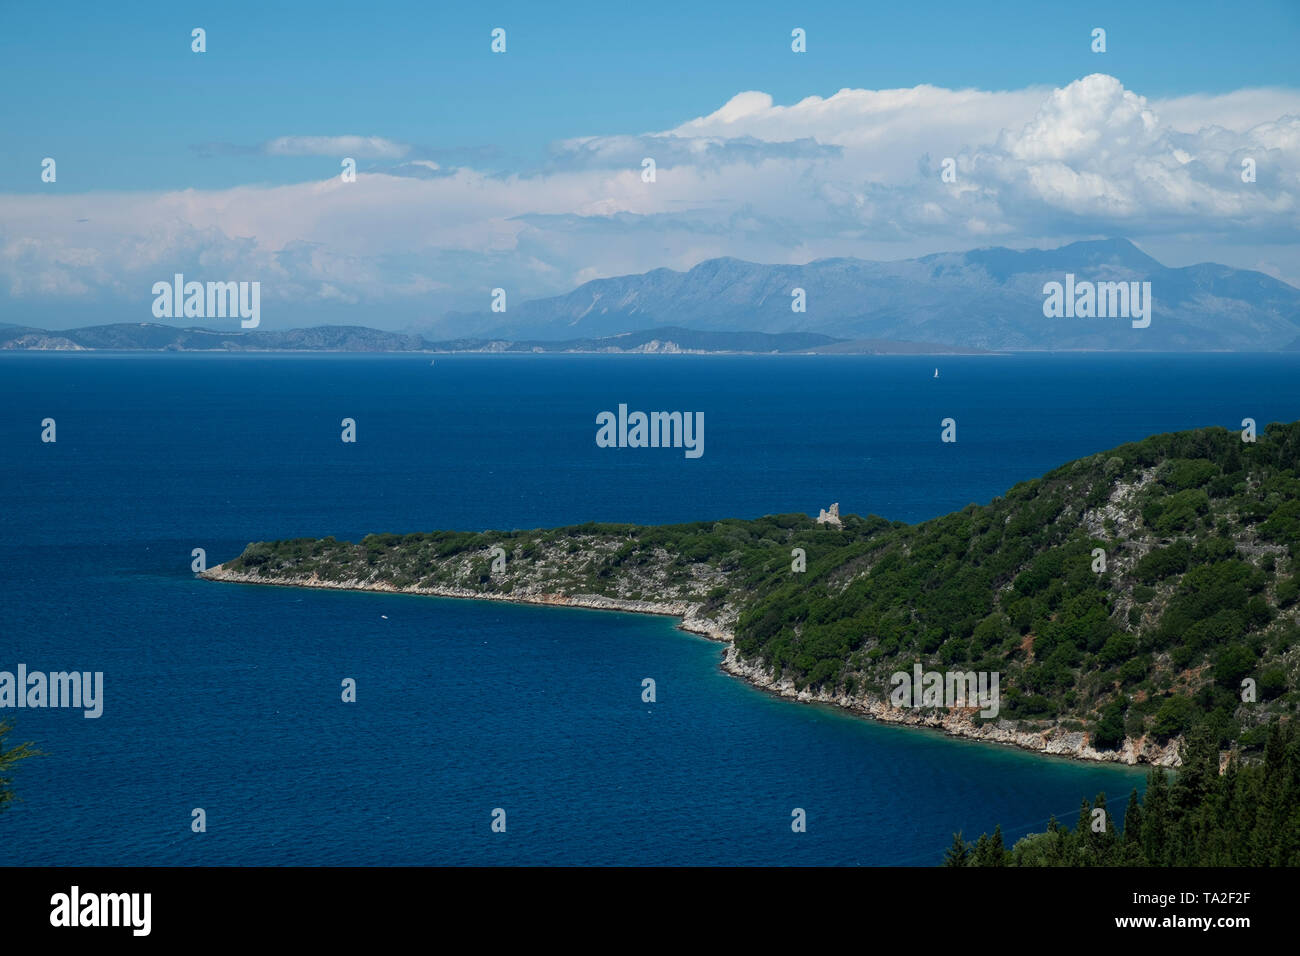 View out across the Ionian Sea towards the nearby islands and mainland at Rachi, near Kioni in Ithaca Greece. Ithaca, Ithaki or Ithaka is a Greek island located in the Ionian Sea to the west of continental Greece. Ithacas main island has an area of 96 square kilometres. It is the second-smallest of seven main Ionian Islands. - Stock Image